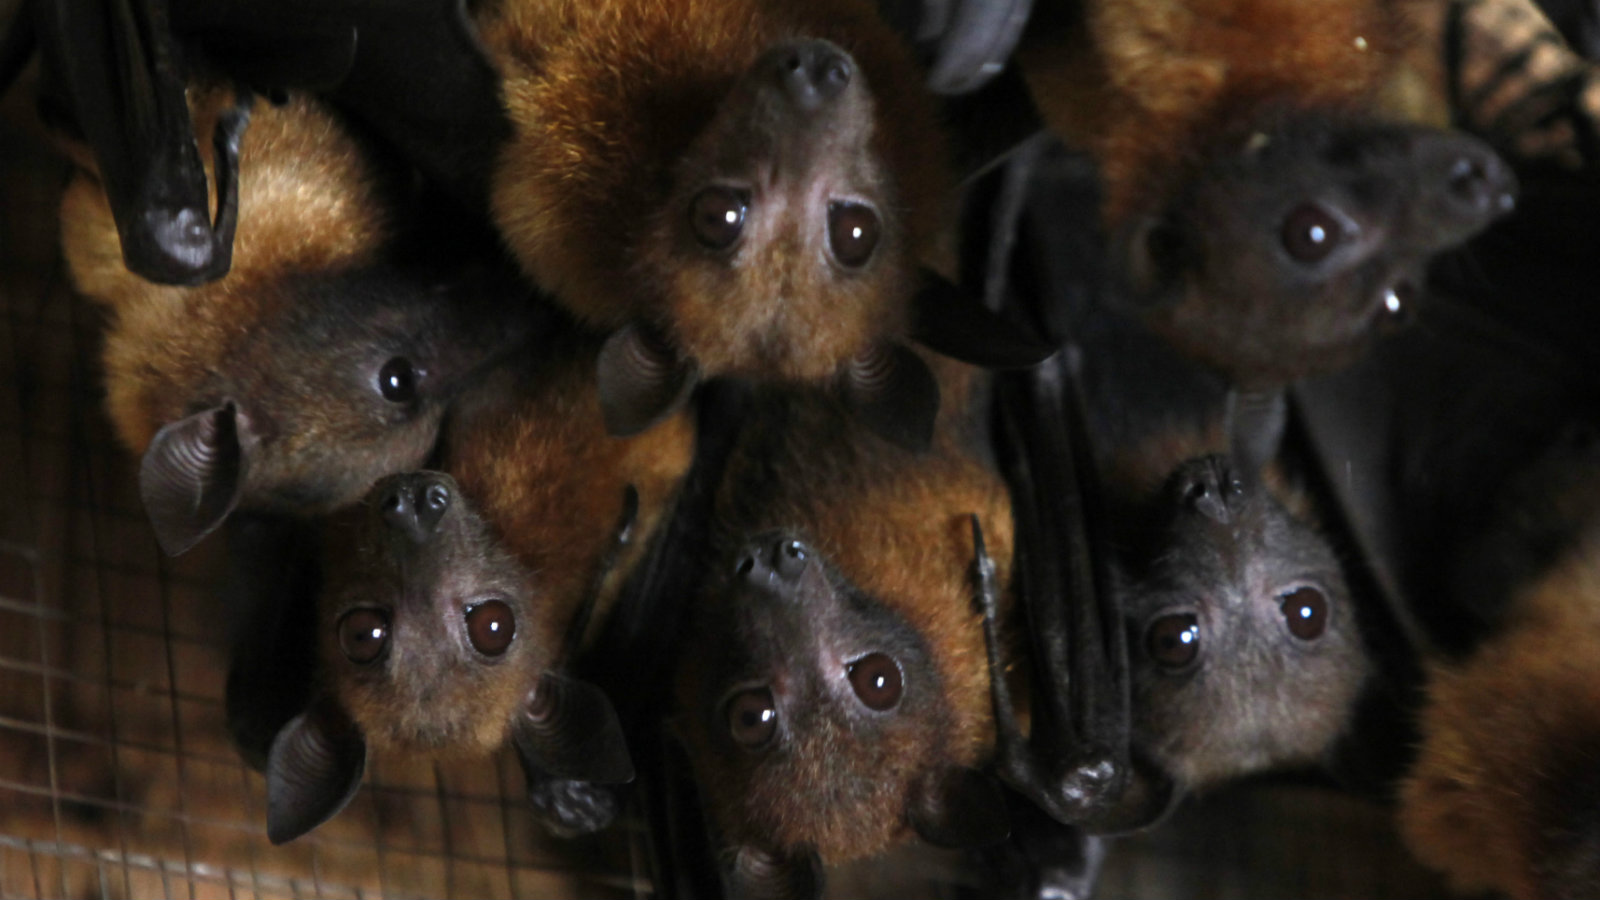 Grey-headed flying foxes reside in animal trainer Santisak Dulapitak's house in the outskirts of Bangkok September 10, 2009. Santisak, 53, has been training his animals to appear in advertisements and movies for more than two decades. The grey-headed flying fox, a type of fruit bat, is one of many animals Santisak trains. Picture taken September 10, 2009.